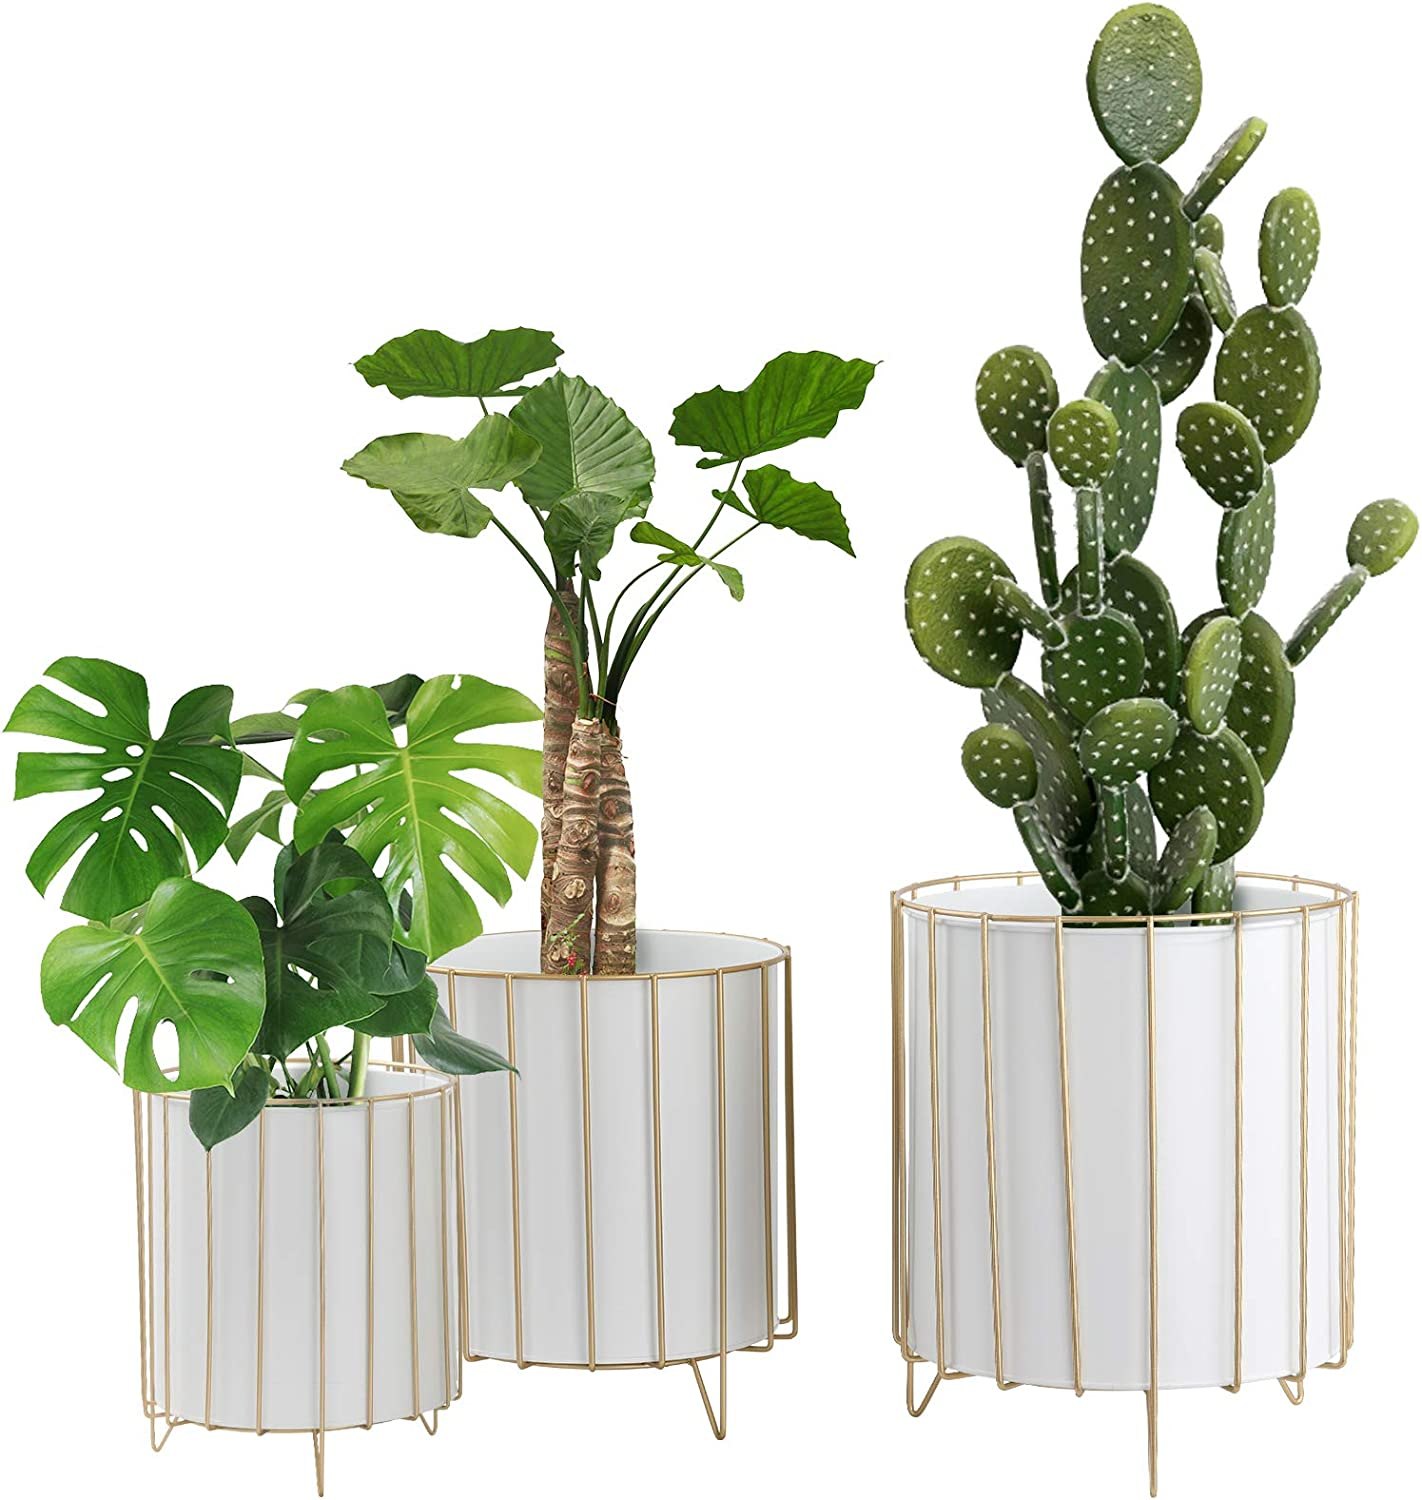 Large Metal Plant Stand Flower Pots Set of 3 for Planters, Modern Garden Planter Holders Indoor Stand with Pots, Outdoor White or Black Iron Flower Pots with Golden Wire Frame for Home Decorate(White)